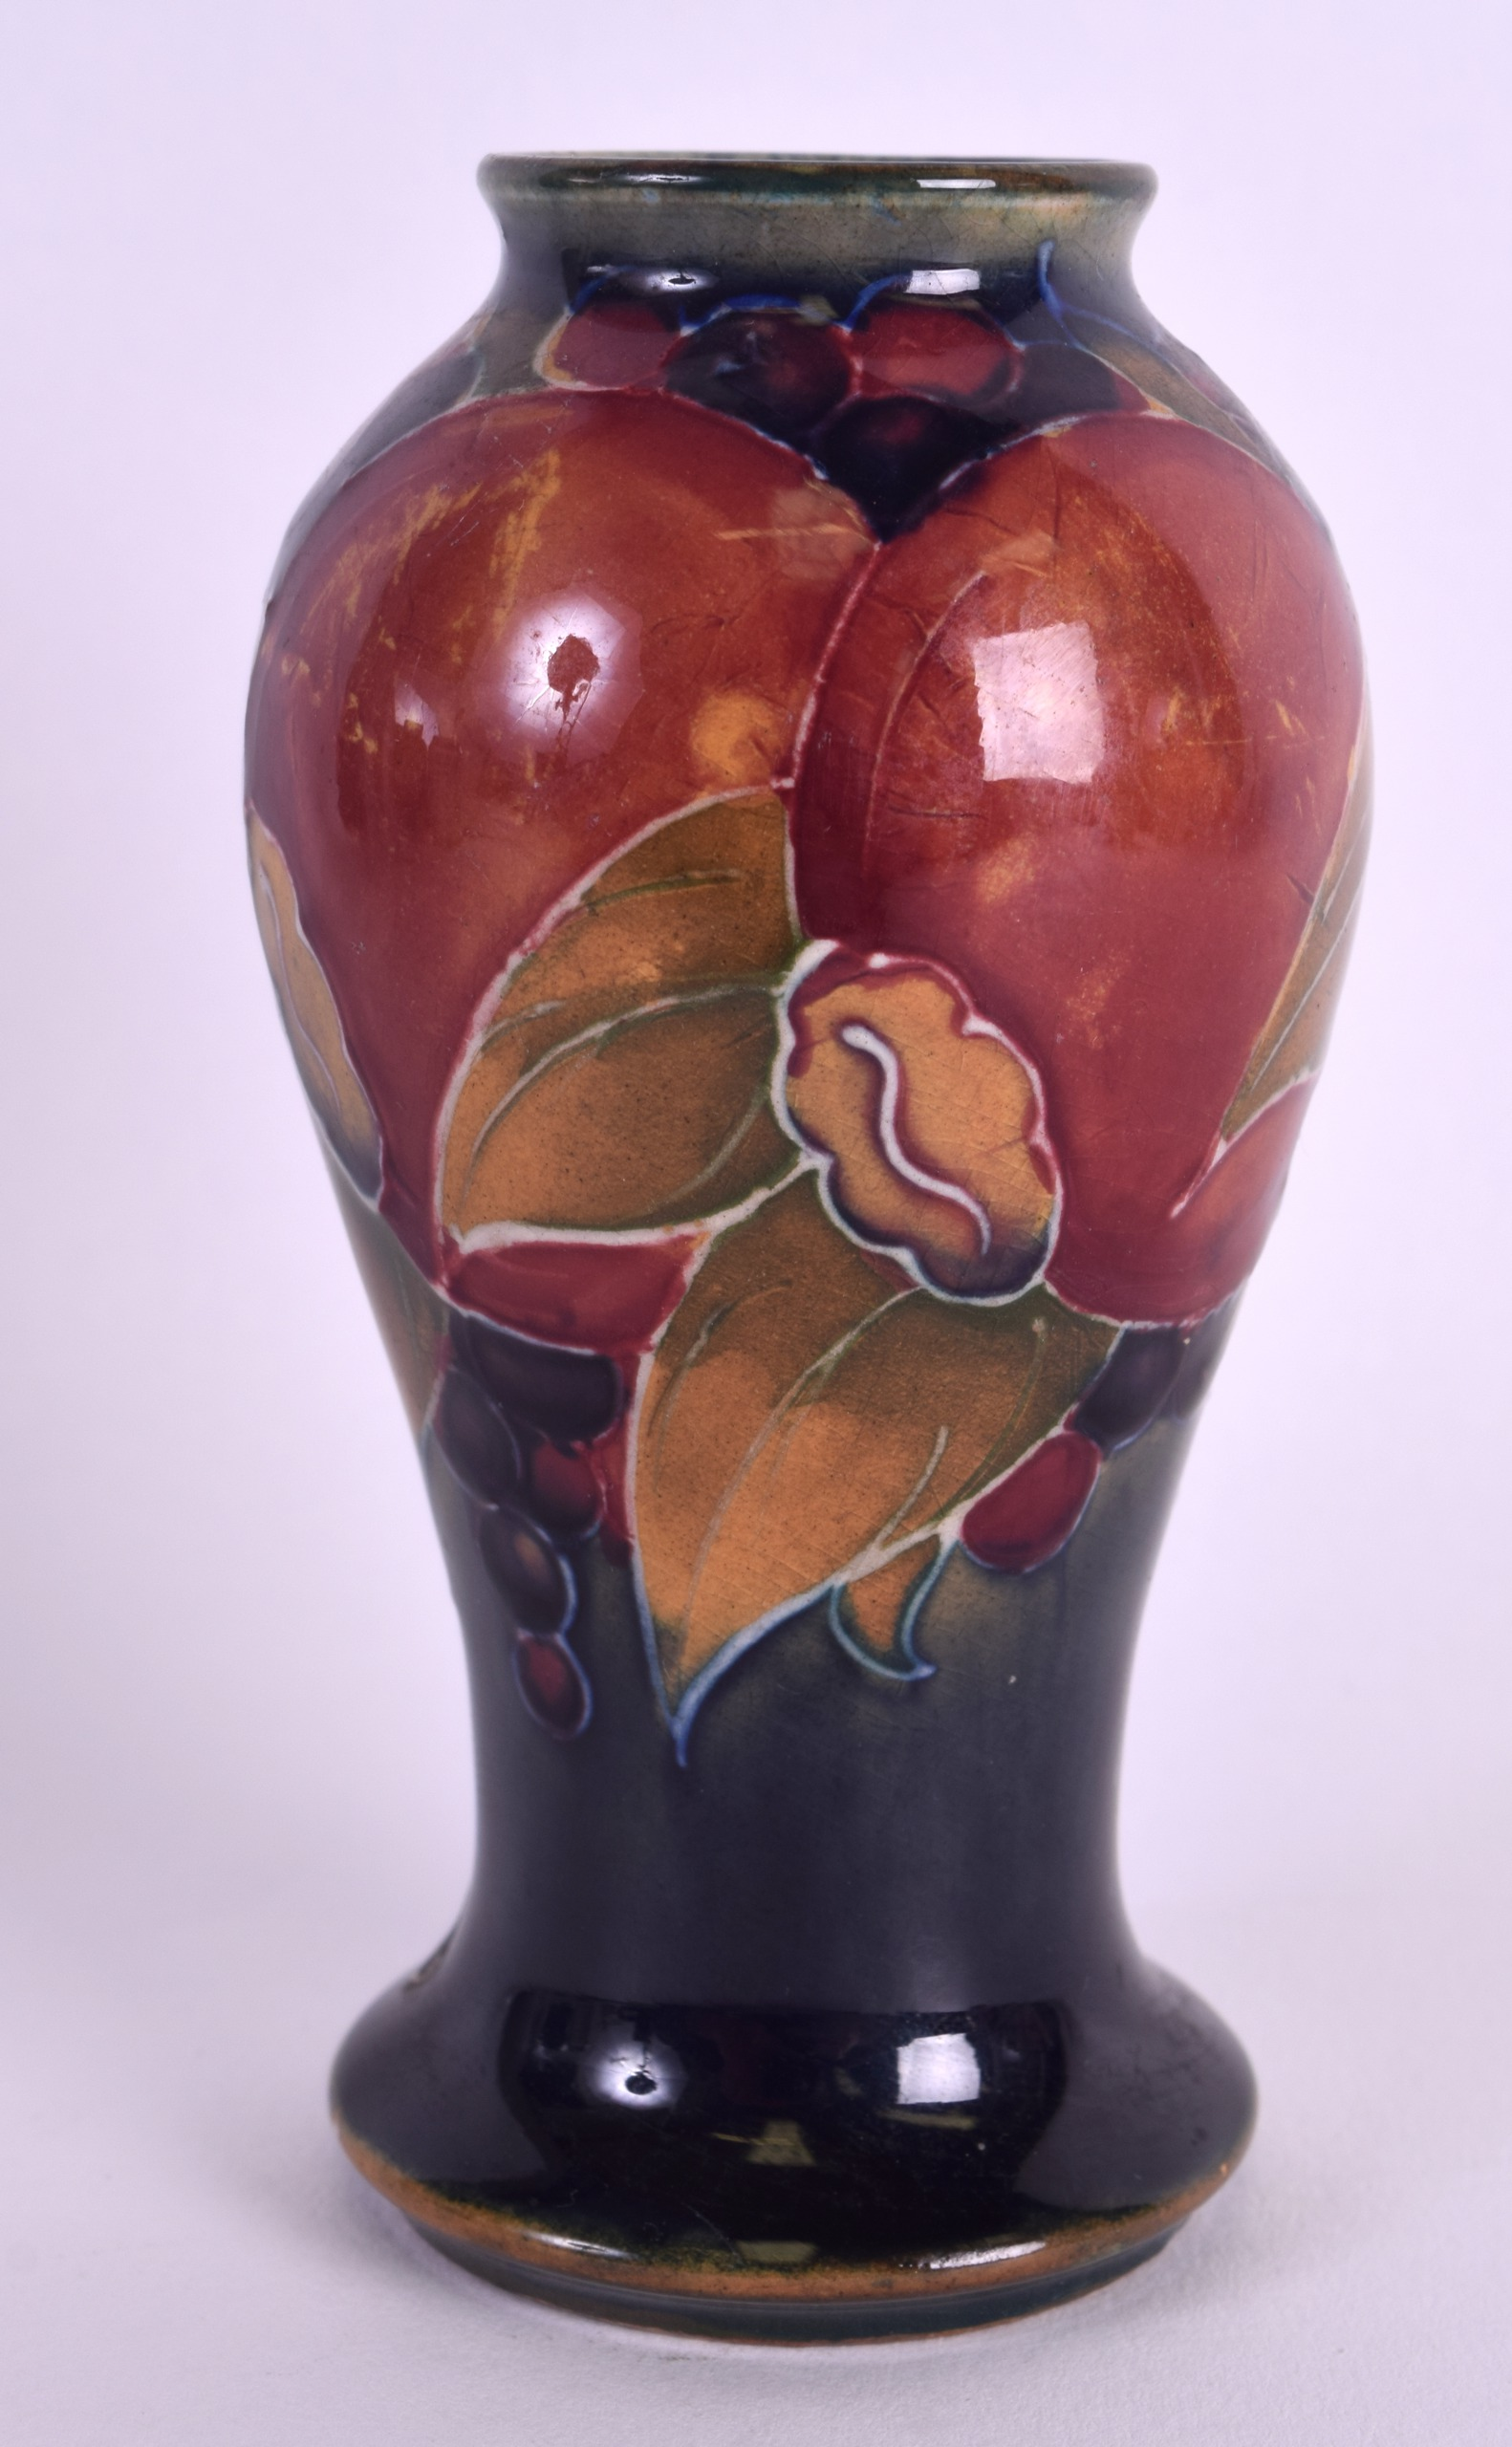 Lot 106 - A SMALL WILLIAM MOORCROFT BALUSTER VASE decorated with pomegranate. 9.75 cm high.